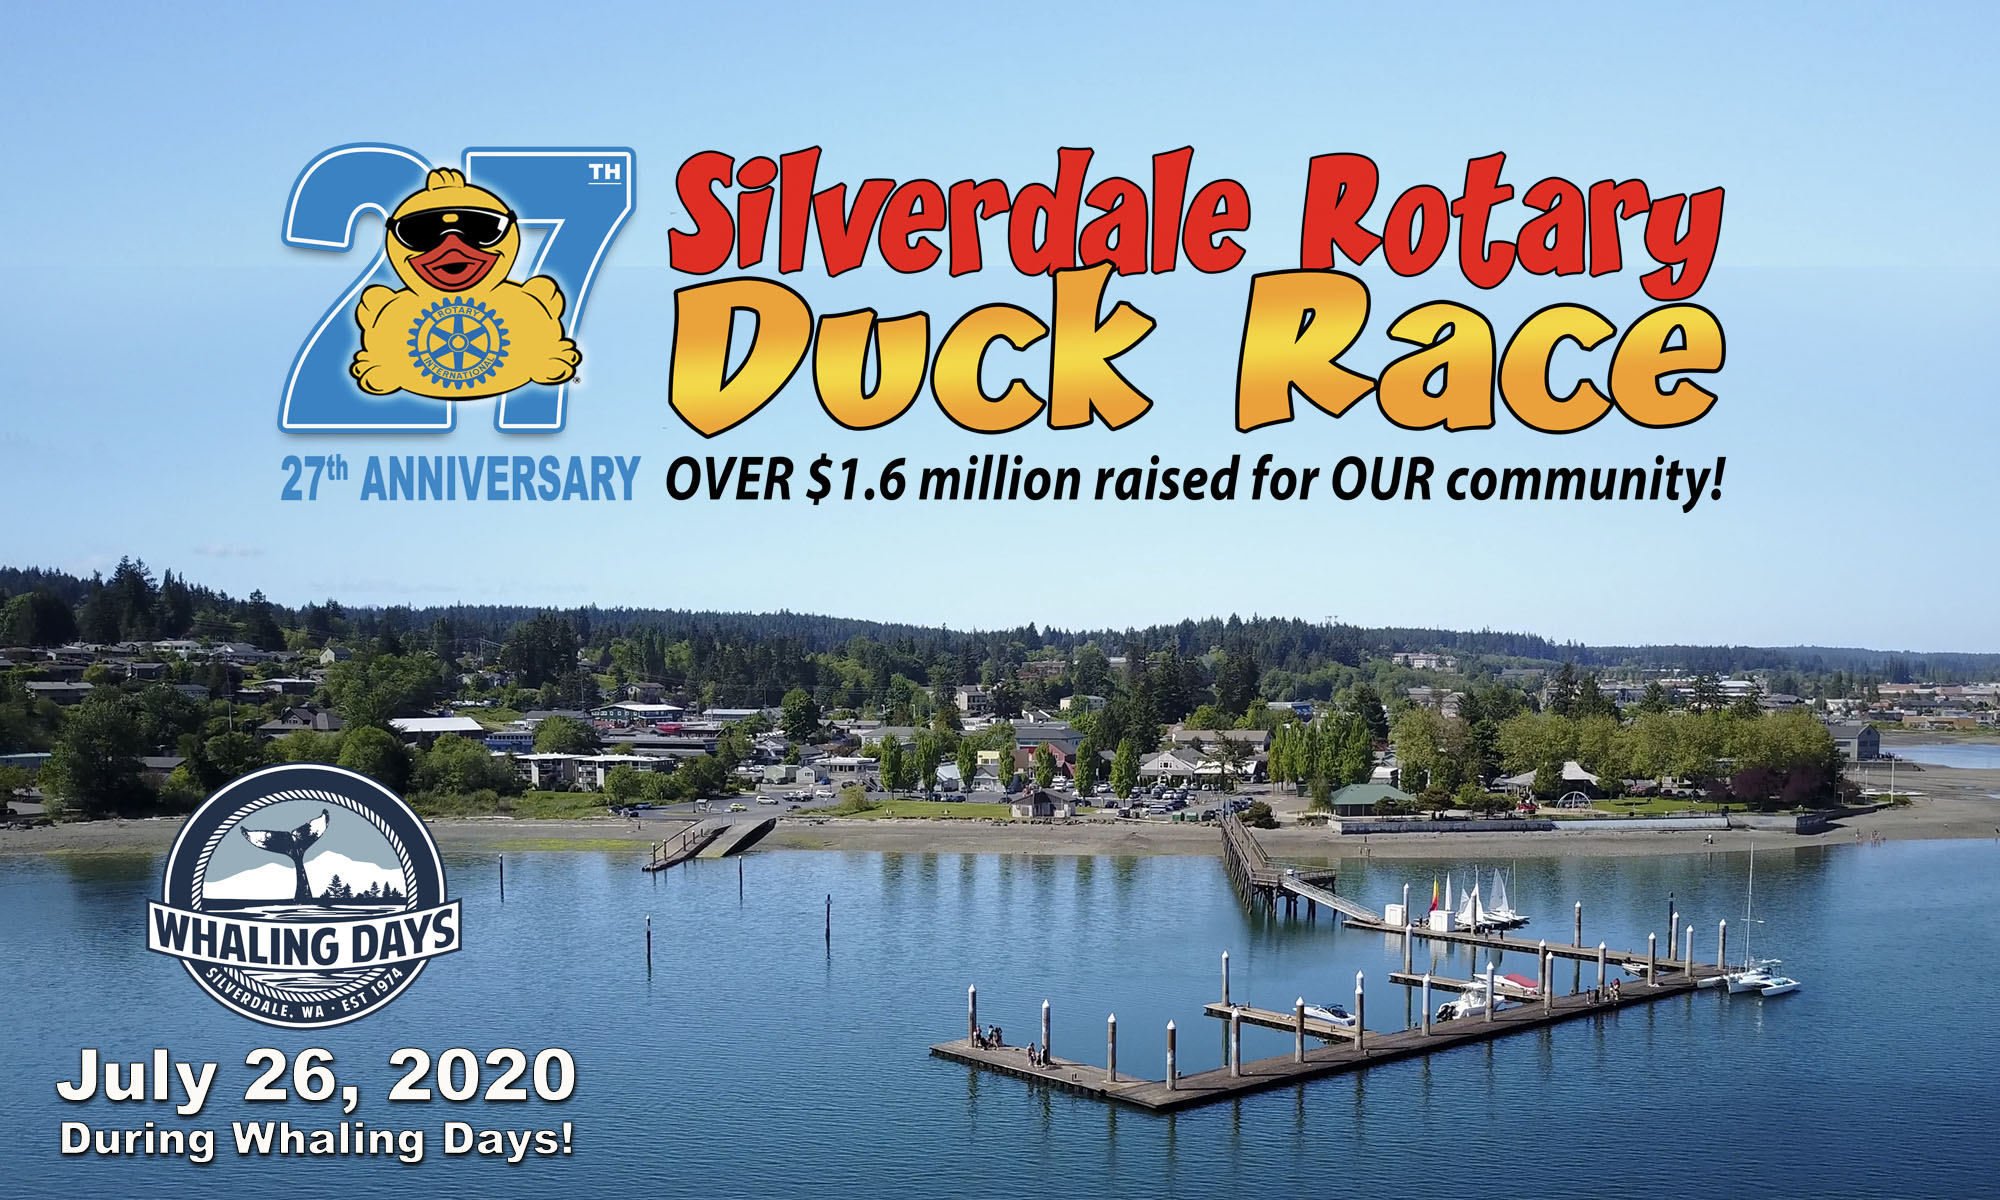 Silverdale Rotary Club Duck Race | Over $1.5 Million Raised